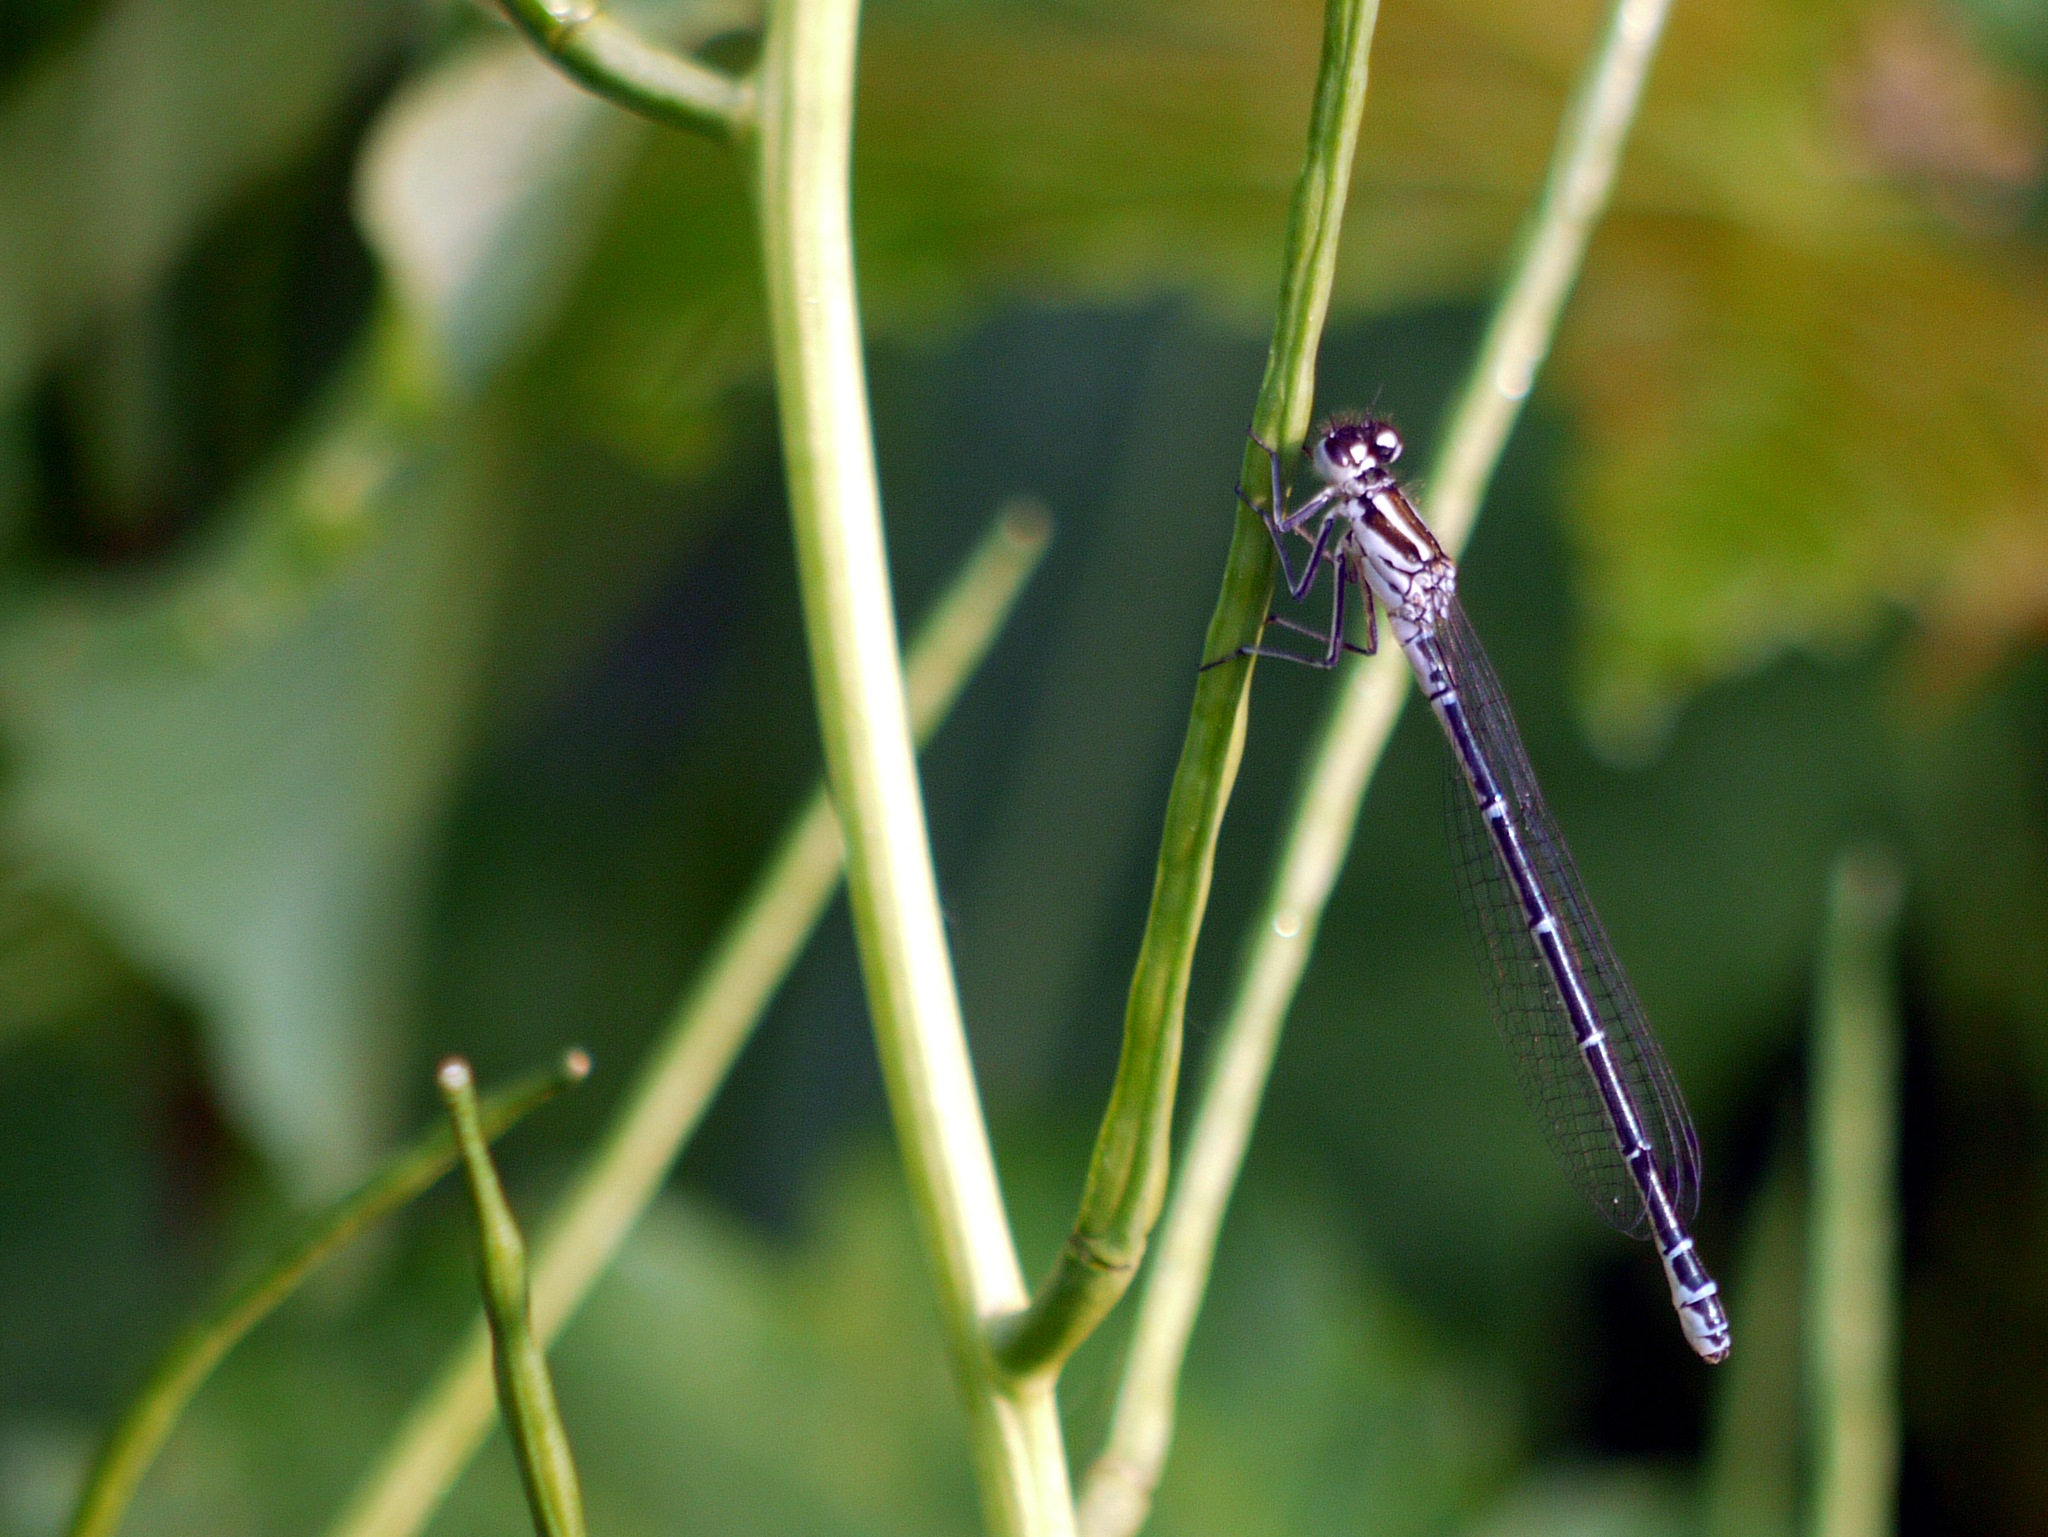 Damselfly by Derek Hollis